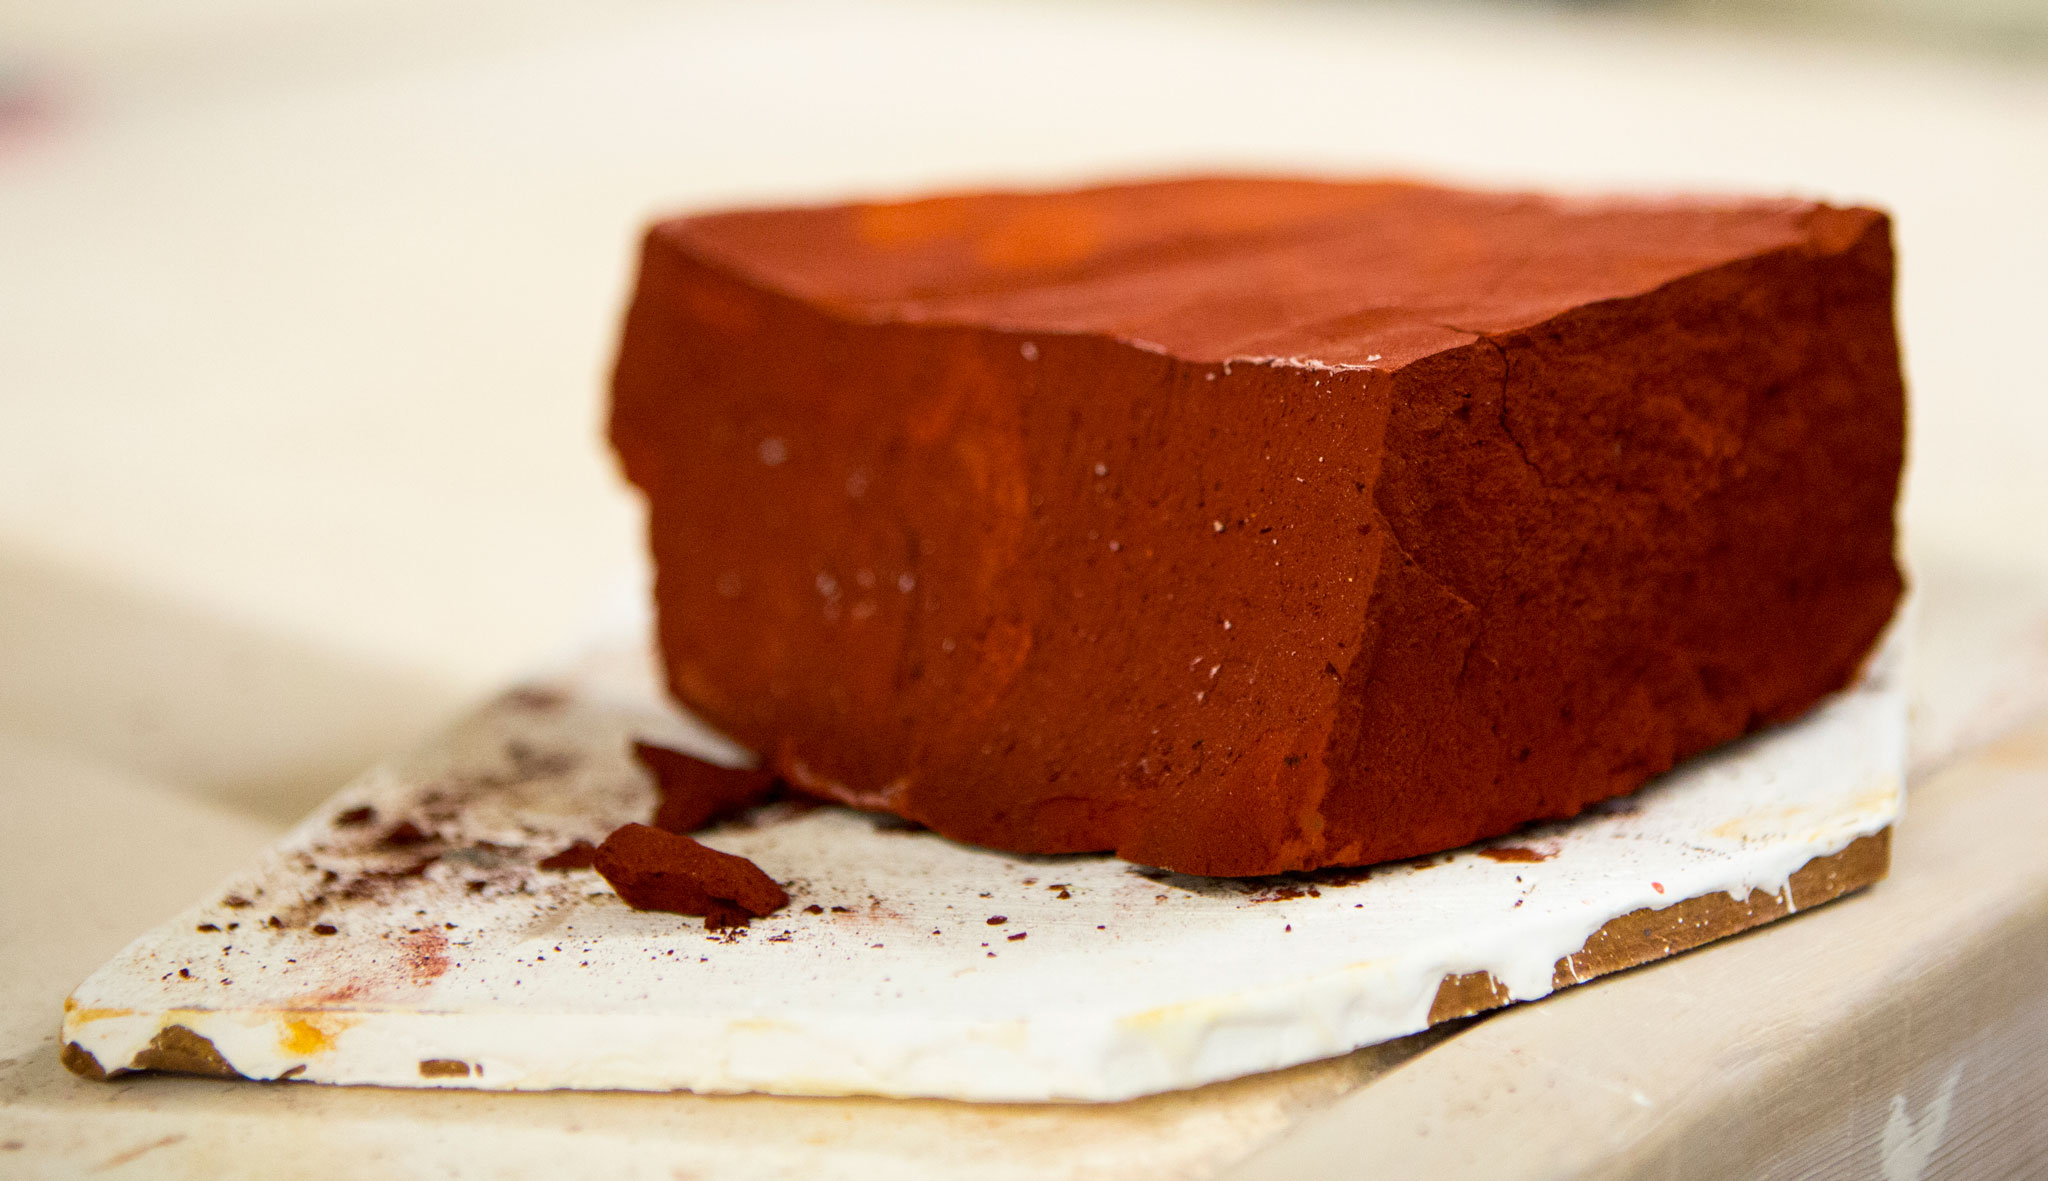 Later cake of extracted iron oxide